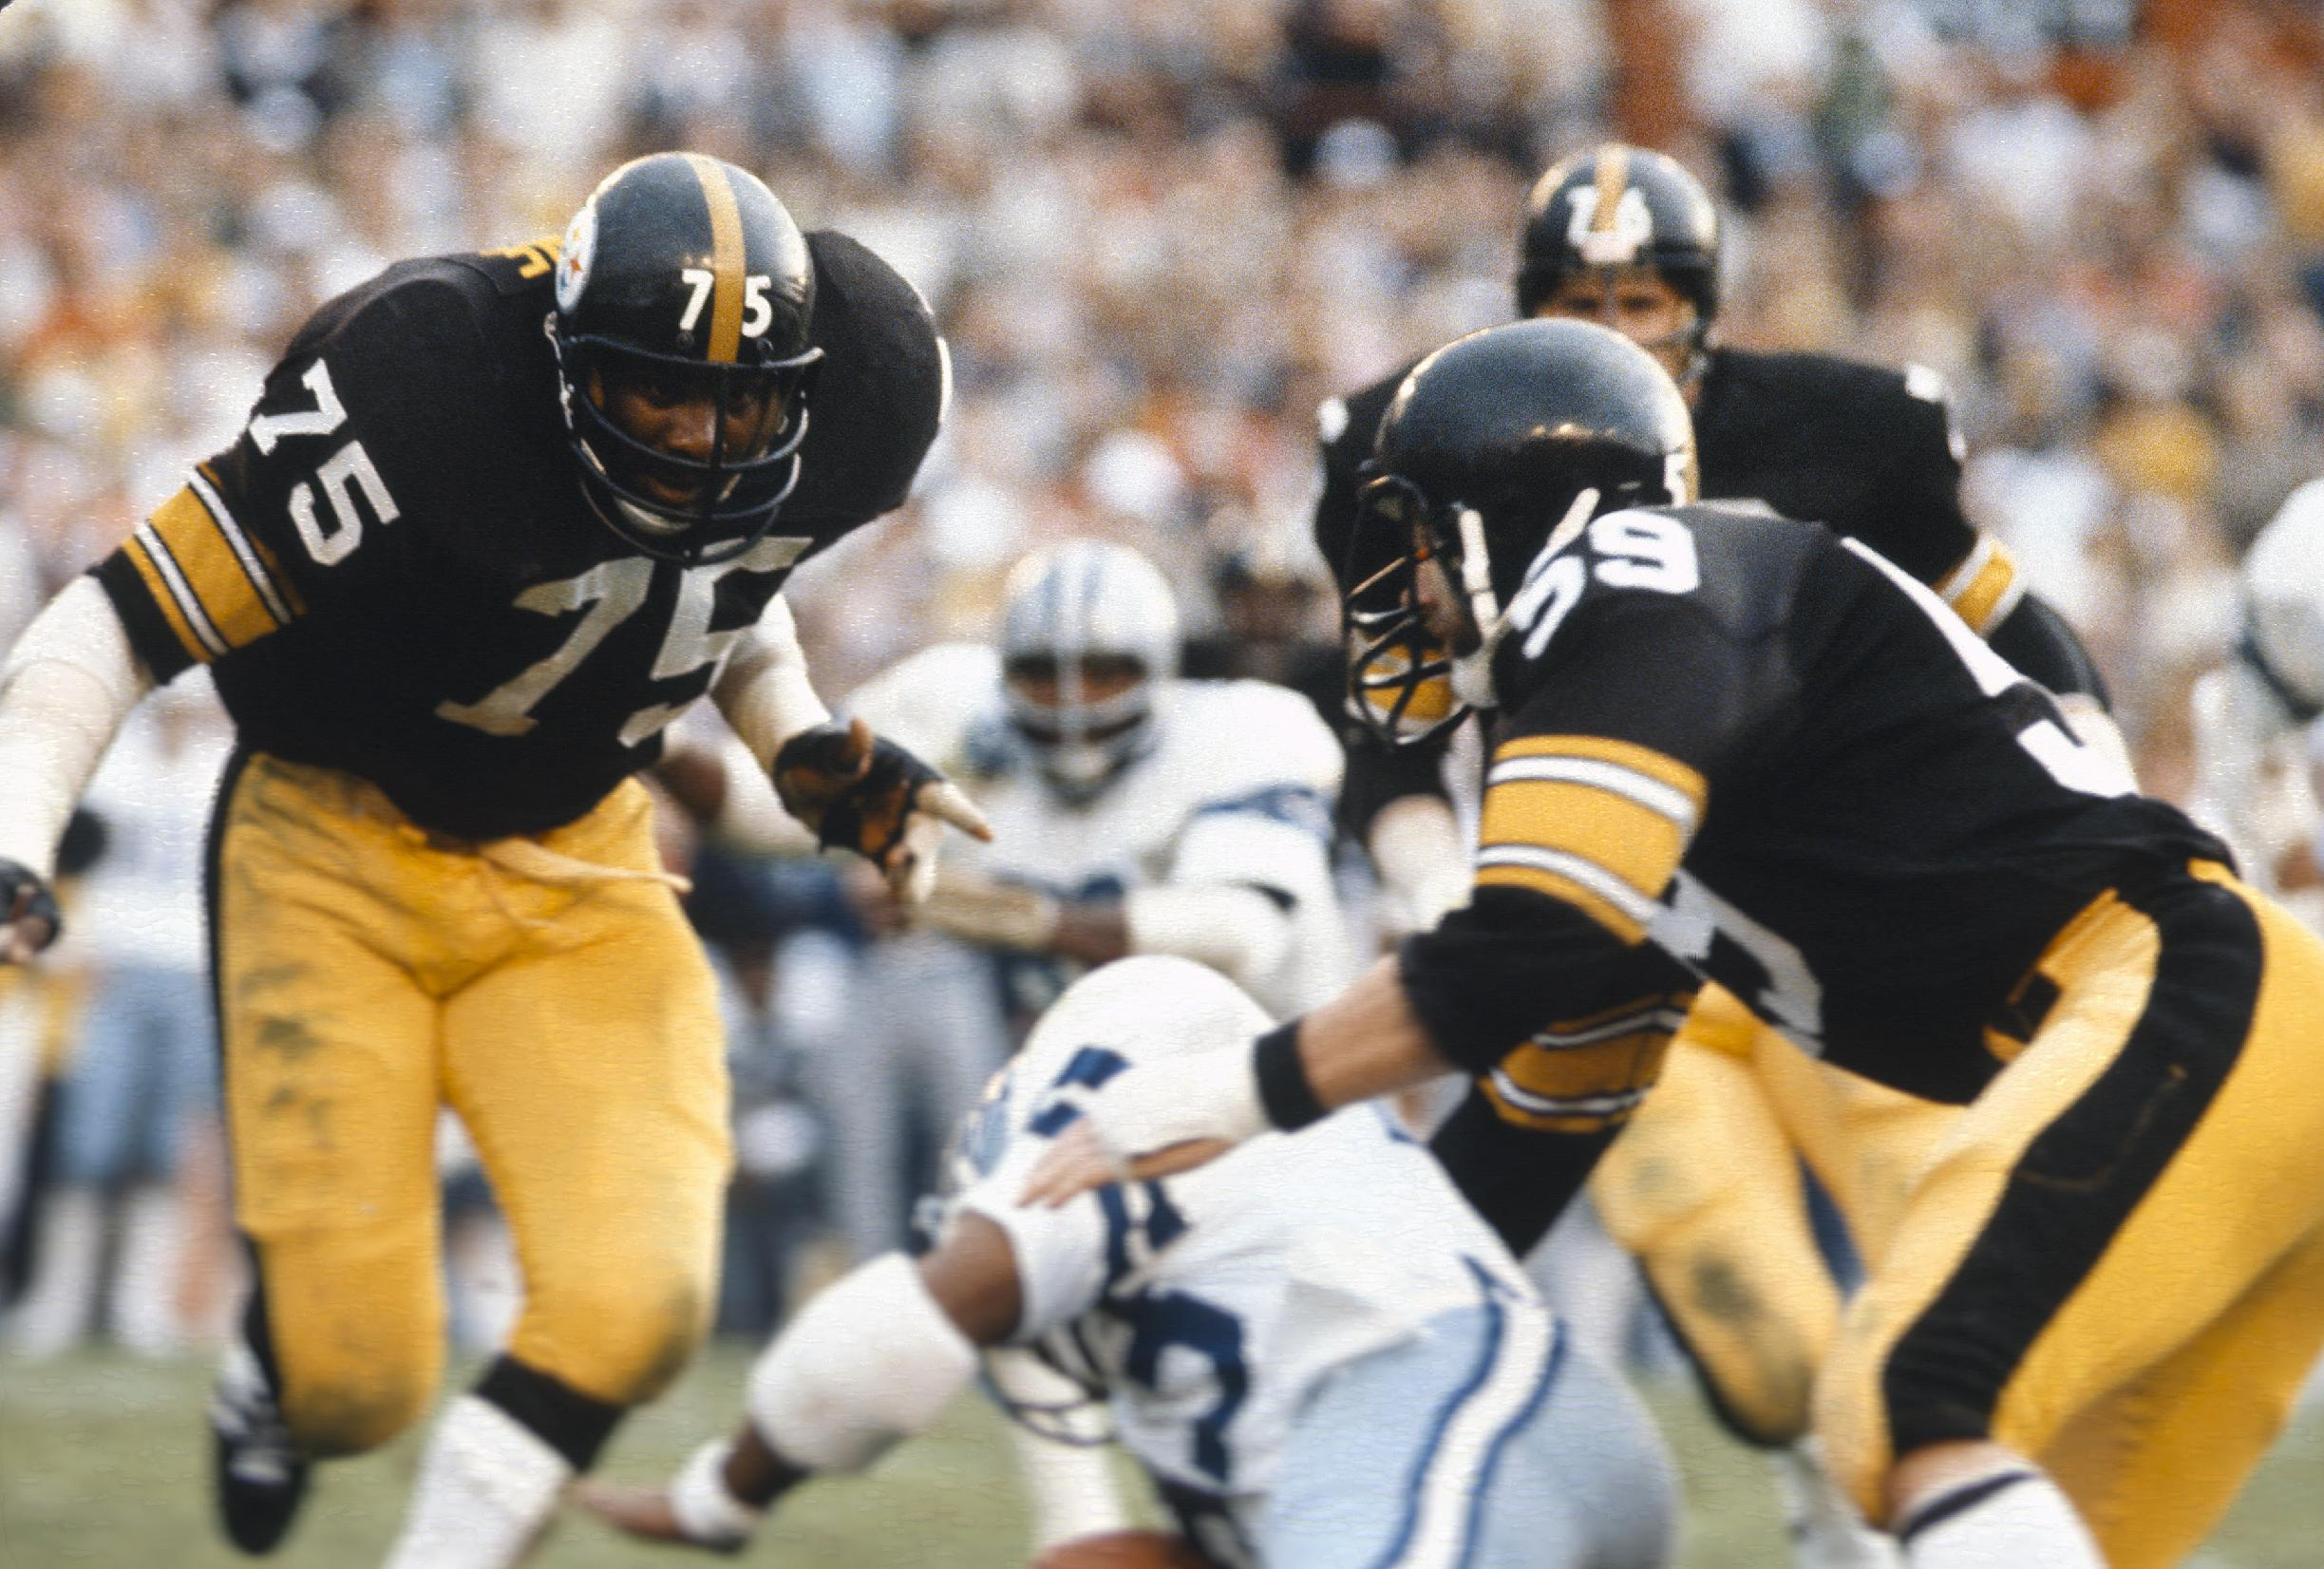 Radio Joe Greene On Why Nfl Defenses Are Not As Effective